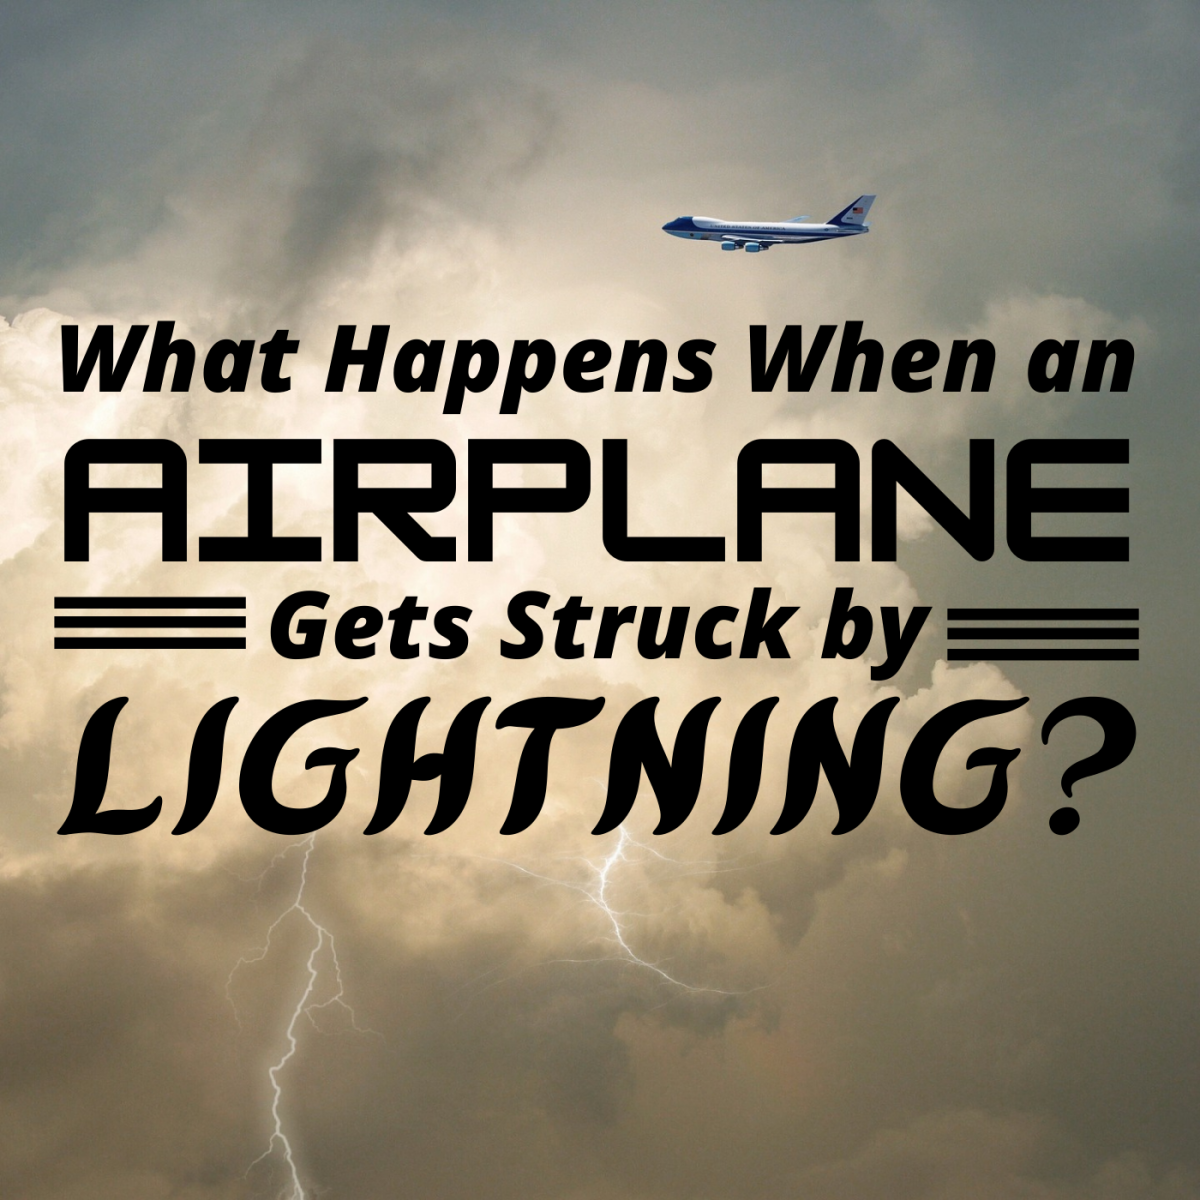 How are airplanes protected from lightning strikes?